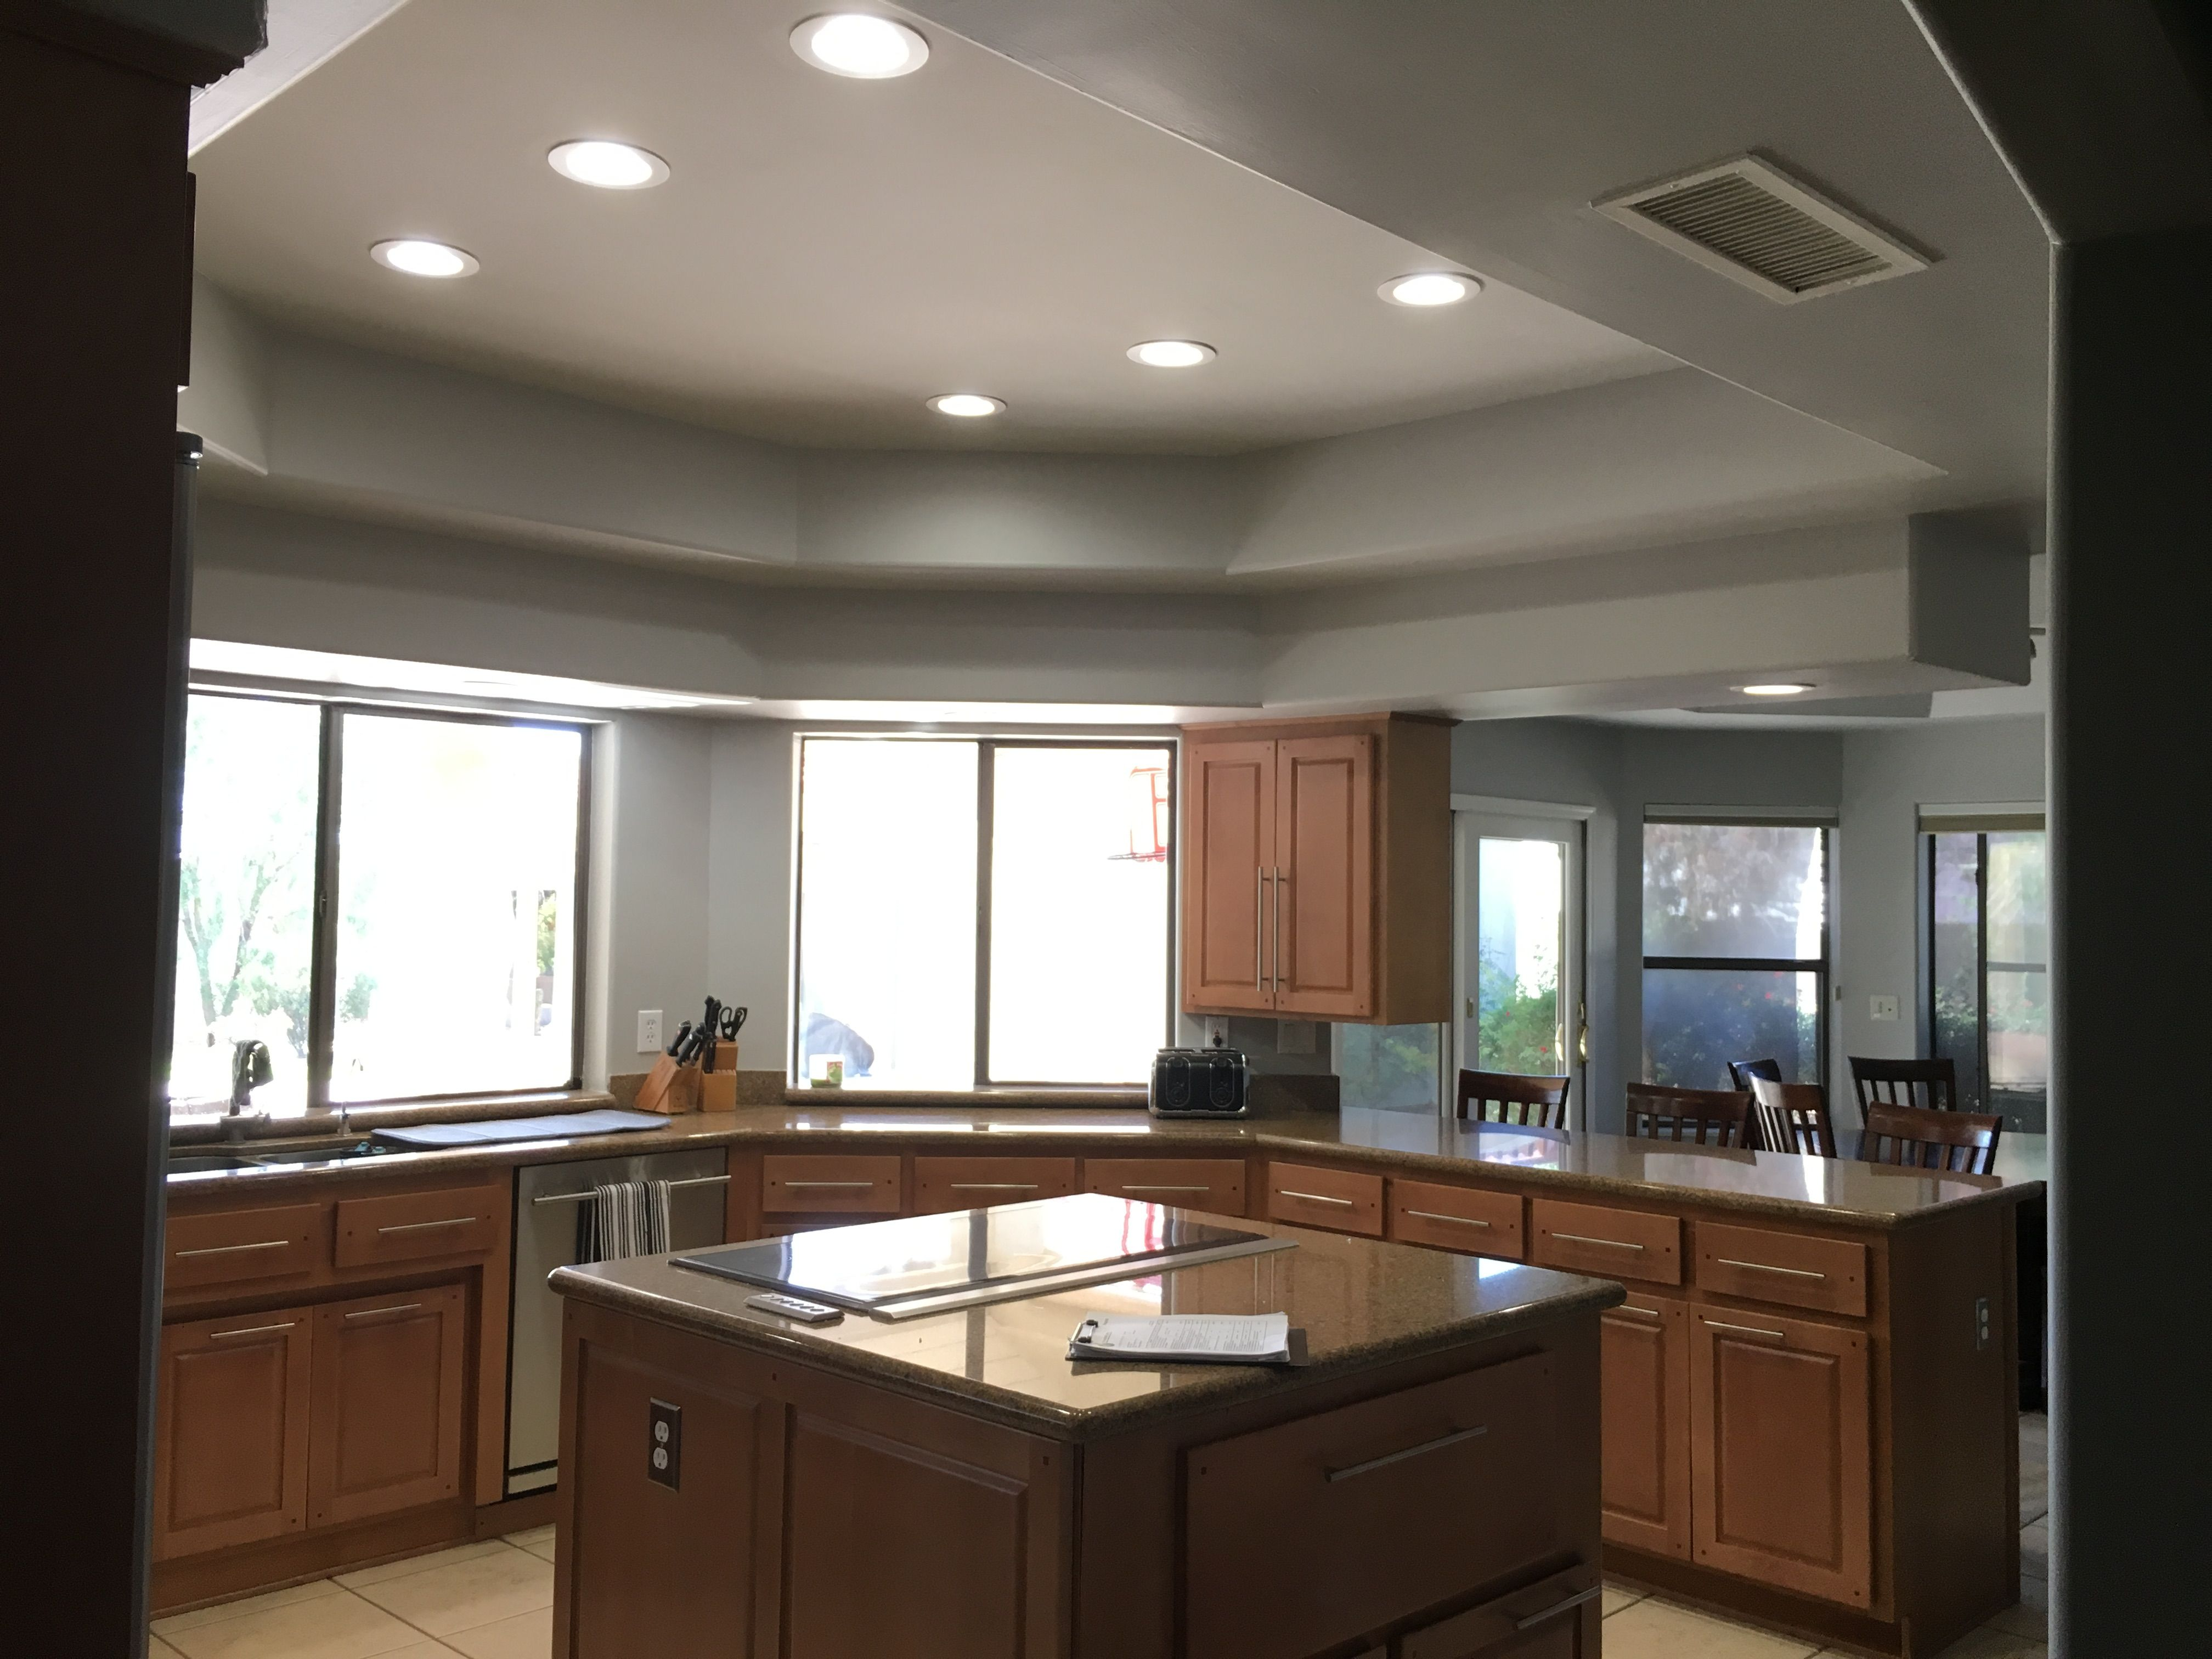 Installed 4000k Led S In A Kitchen With A Dimmer Led